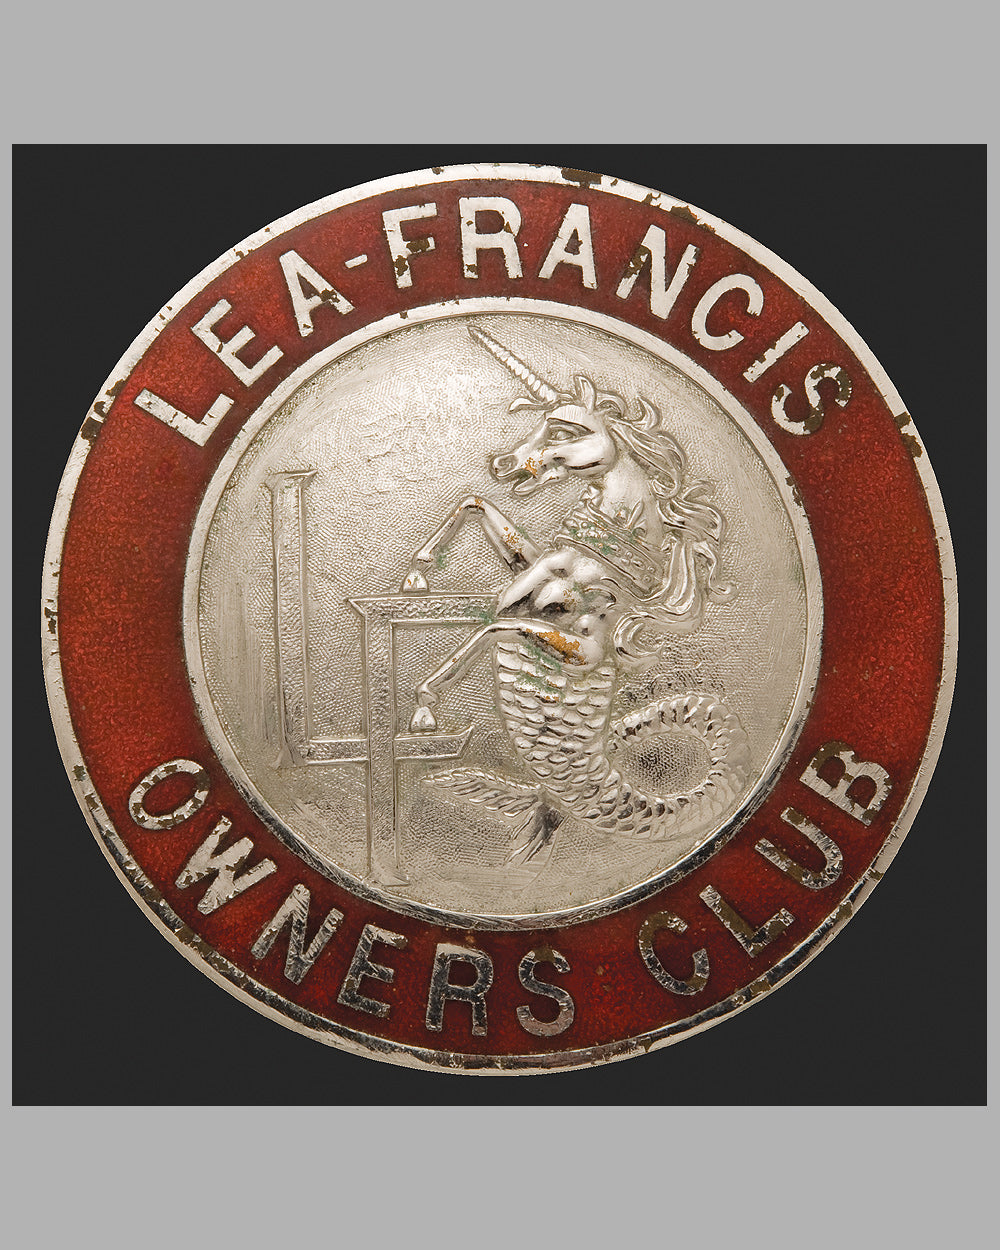 Lea - Francis Owner's Club member's badge